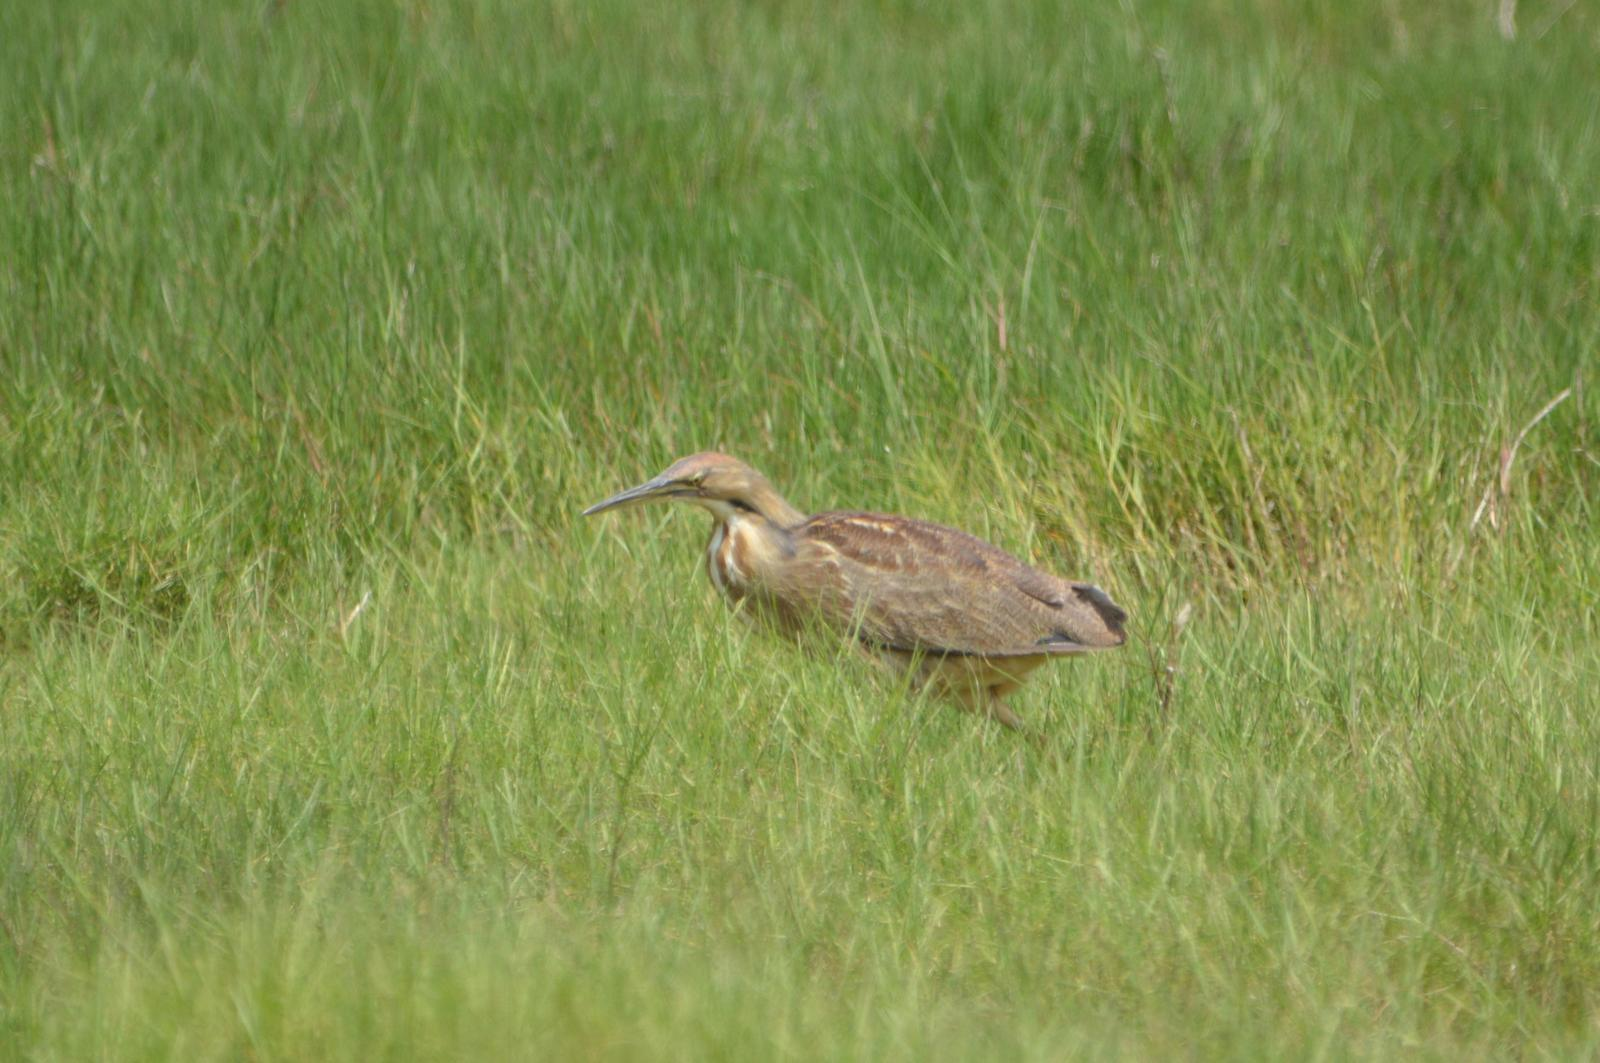 American Bittern Photo by Jeannette Piecznski